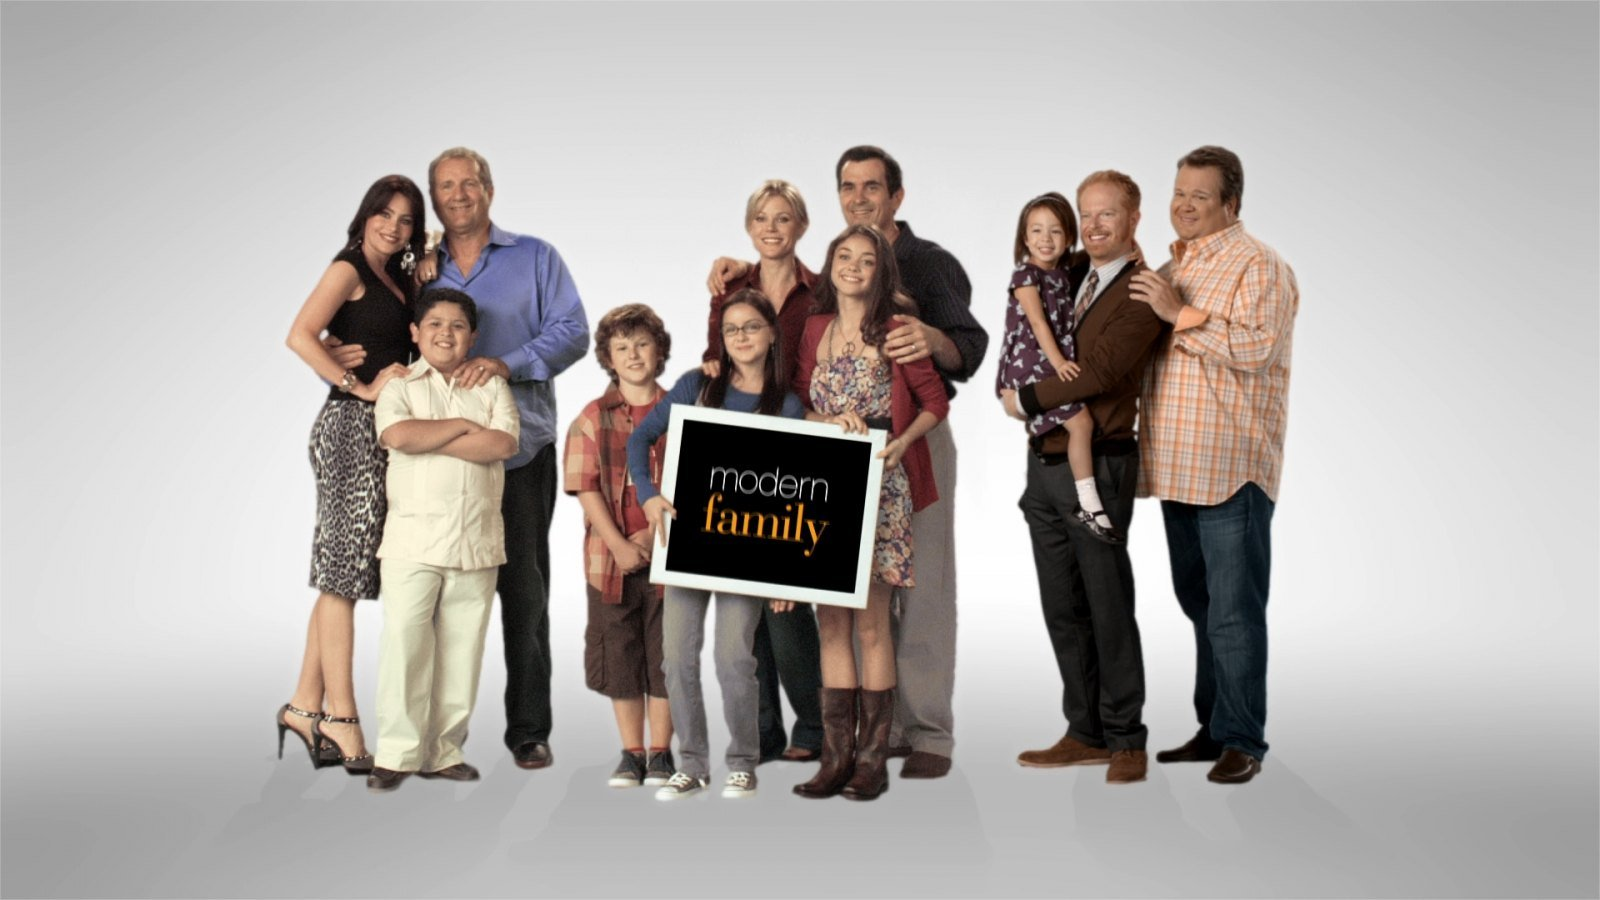 modern family iphone wallpaper gallery